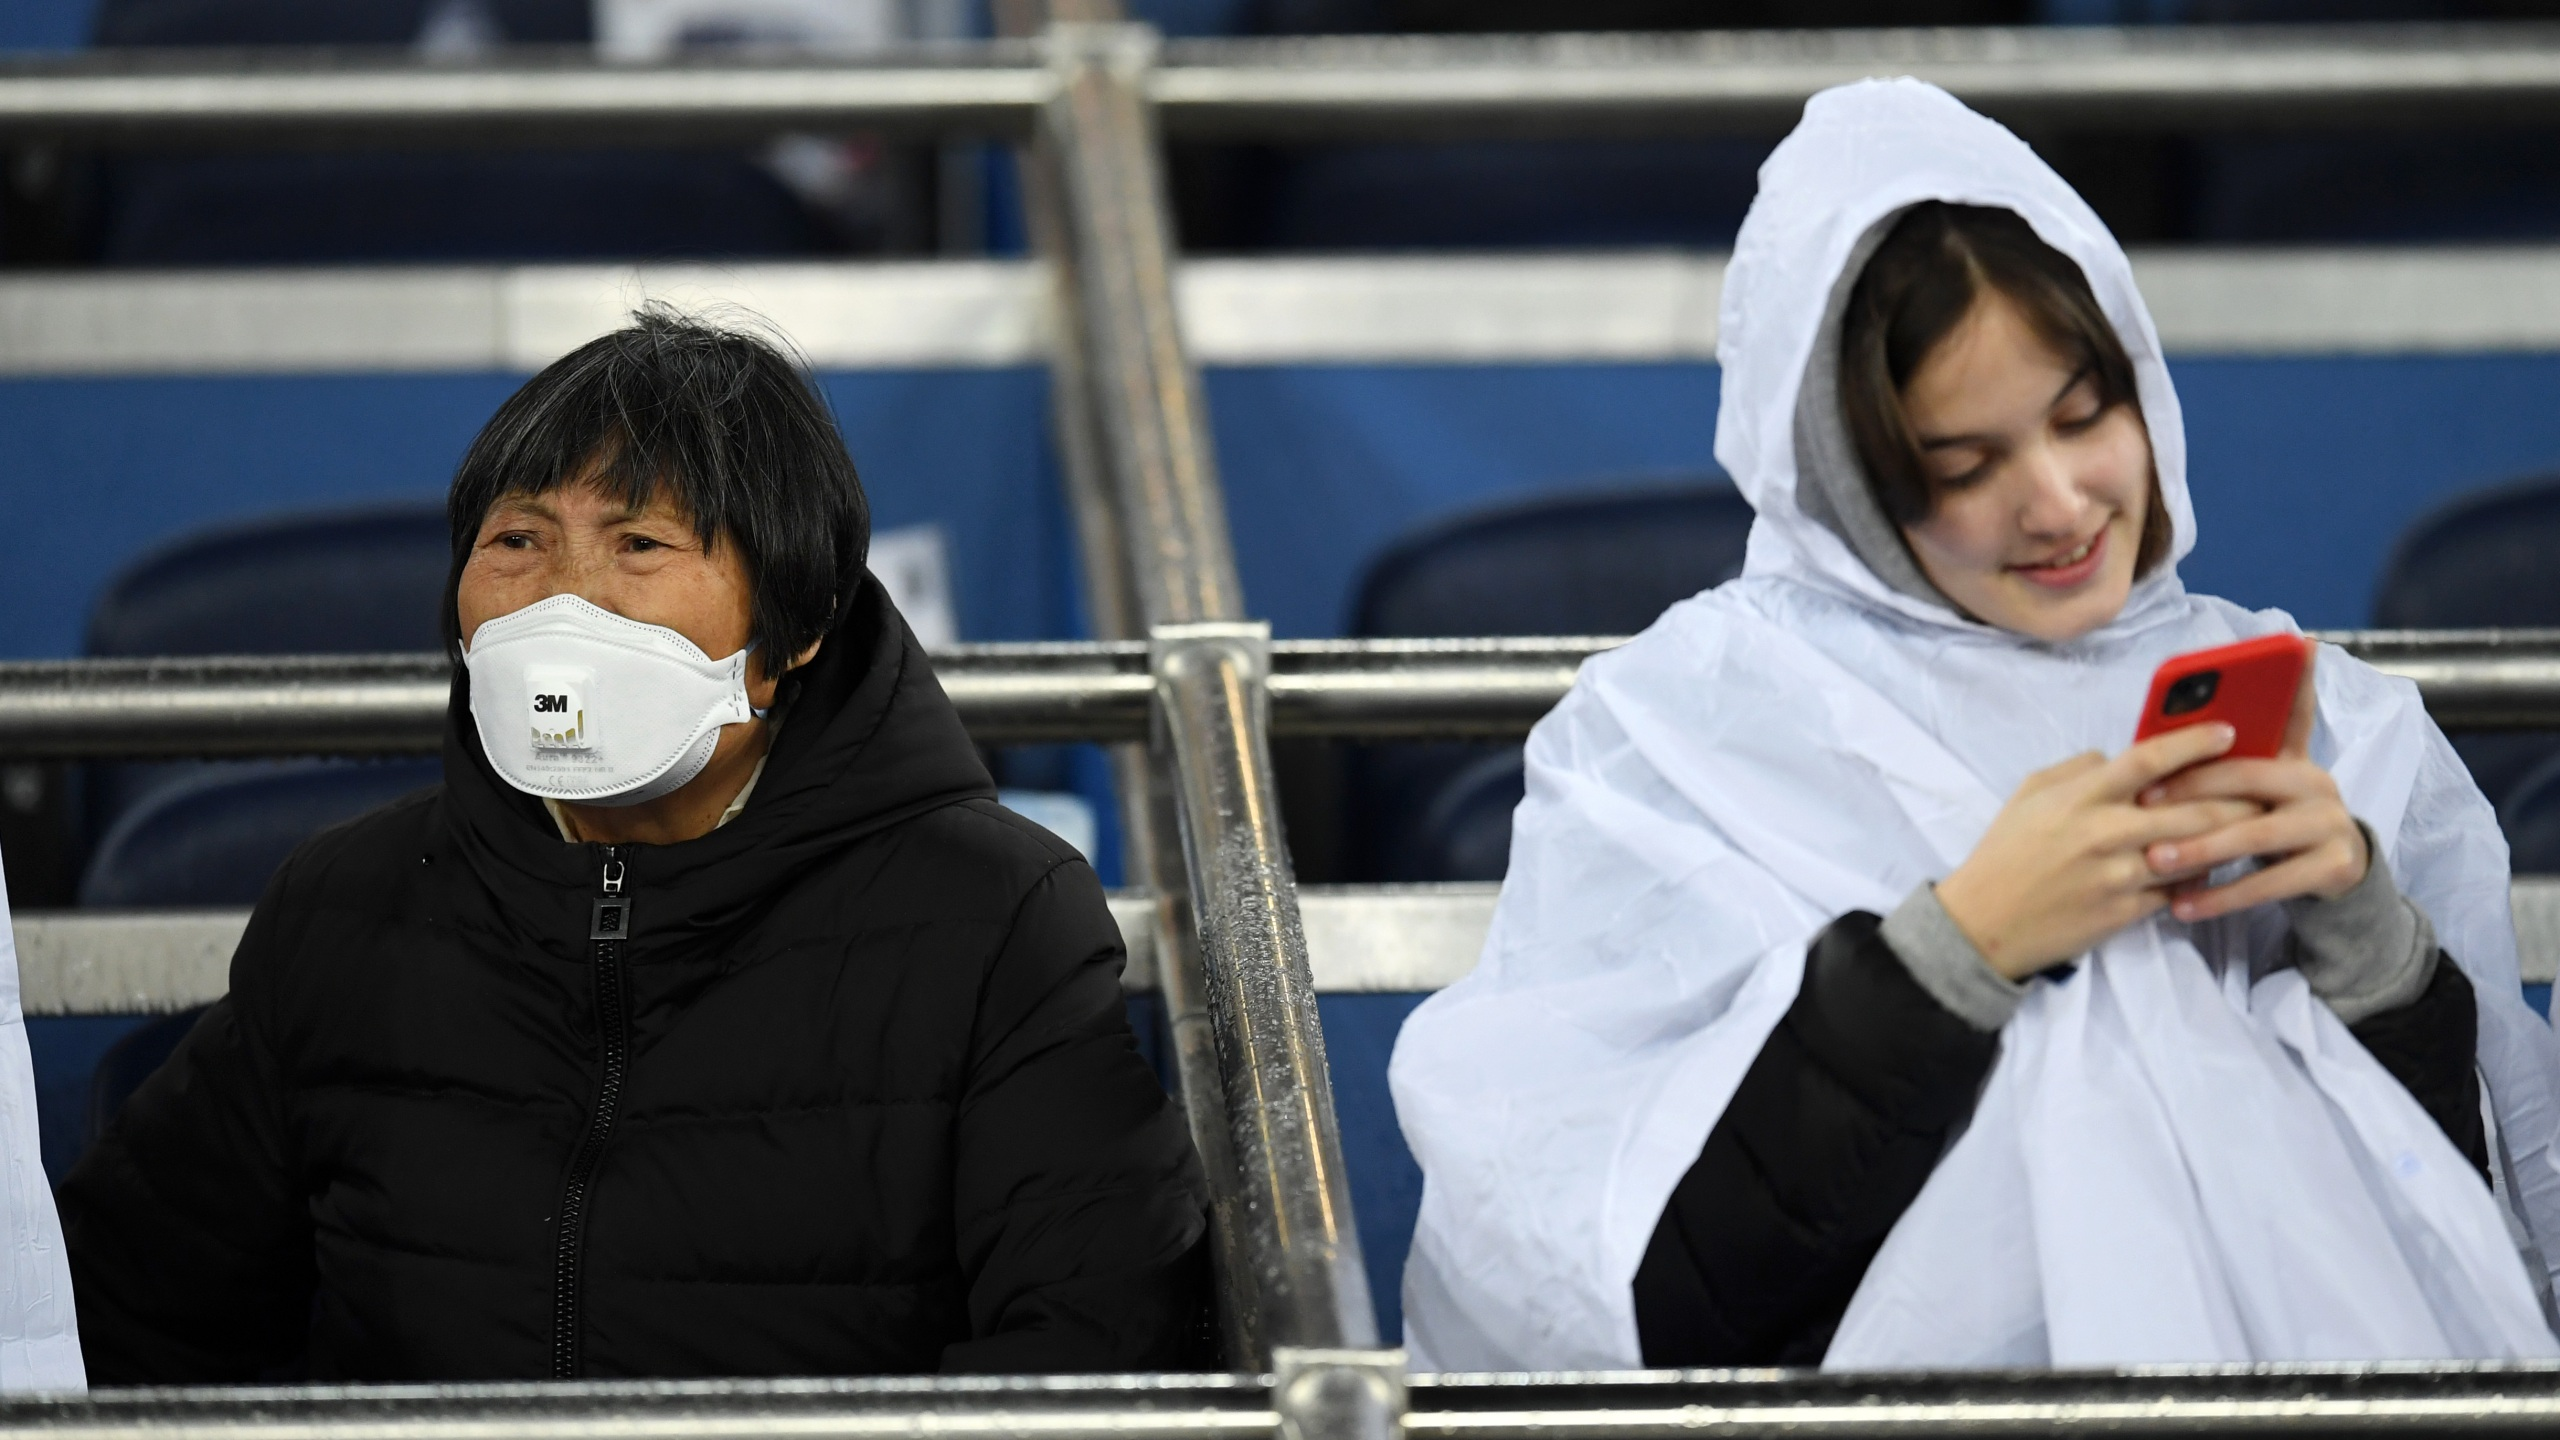 A fan wears a 3M Aura Disposable Respirator as they await kickoff prior to the Liga match between Real Madrid CF and FC Barcelona at Estadio Santiago Bernabeu on March 1, 2020 in Madrid, Spain. (David Ramos/Getty Images)